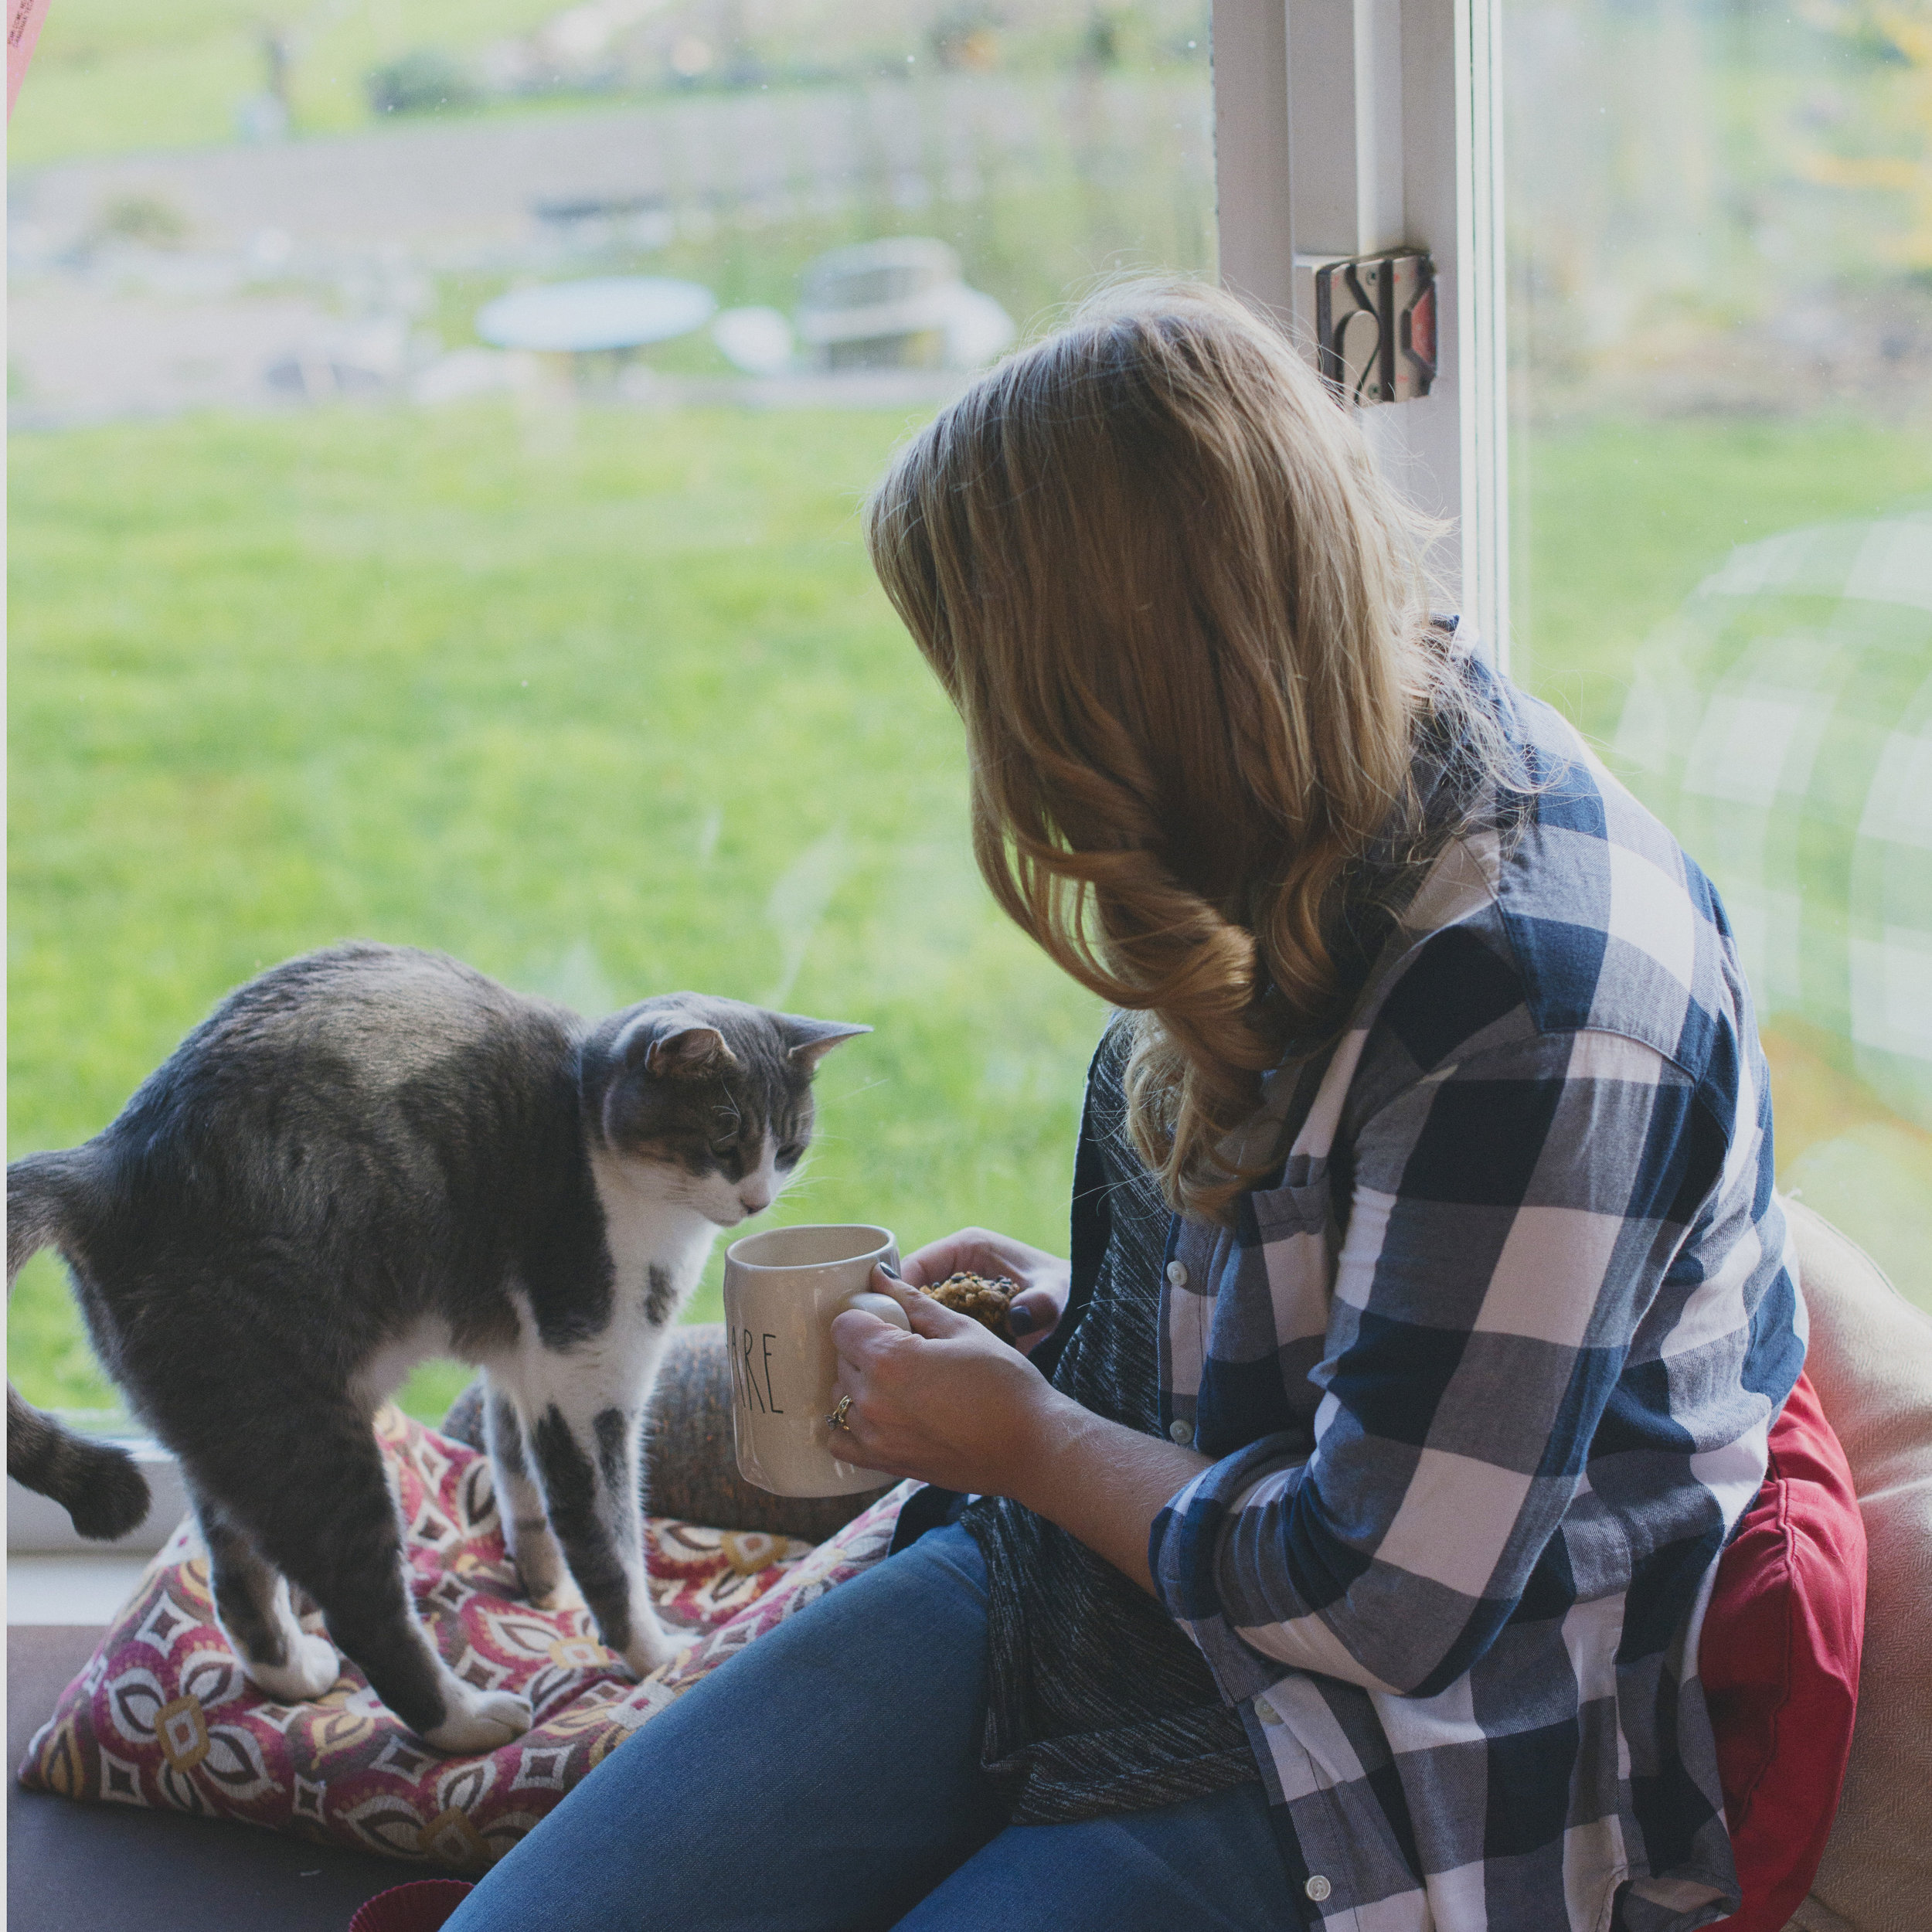 Alternative to fancy coffee words? Find the nearest cat and occupy yourself. Works 60% of the time (signficantly less if there is no cat, or if you have allergies).